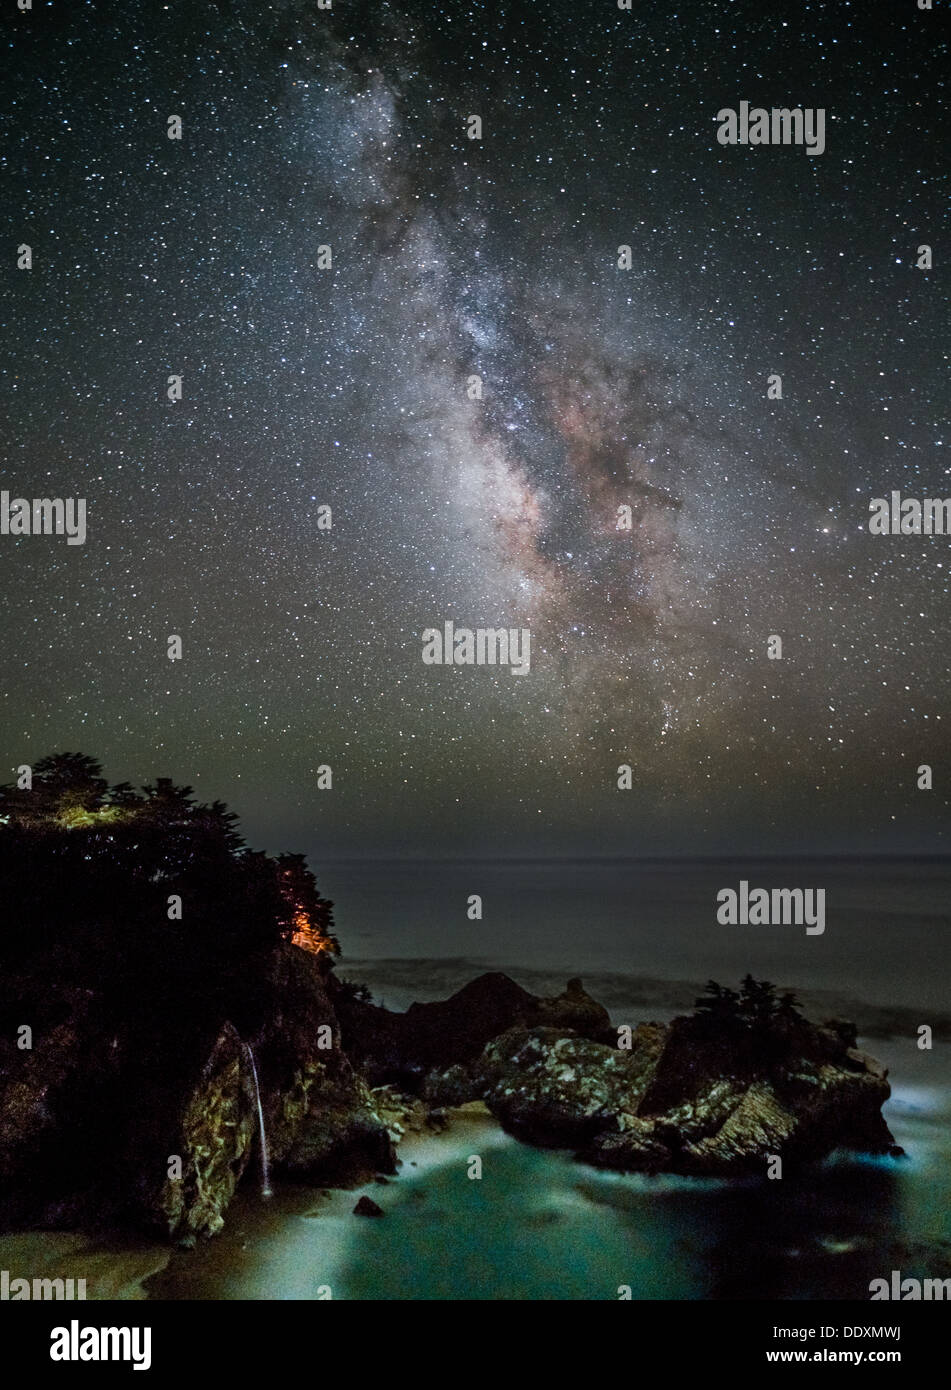 Milky Way Galactic Center Above McWay Falls, Julia Pfeiffer Burns State Park, California - Stock Image